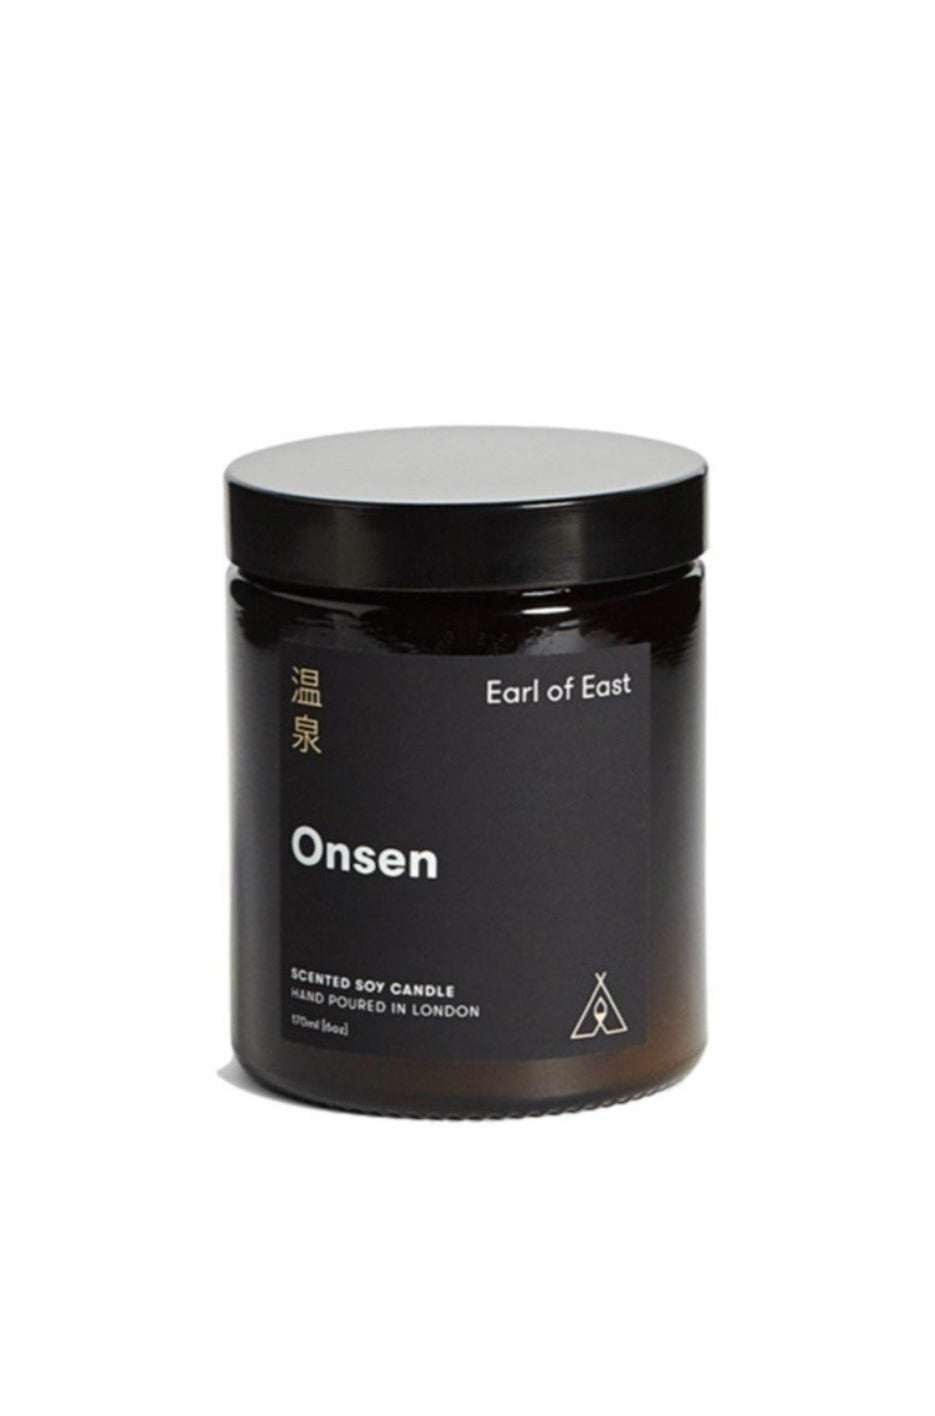 Onsen Soy Wax Candle Candles Earl of East London